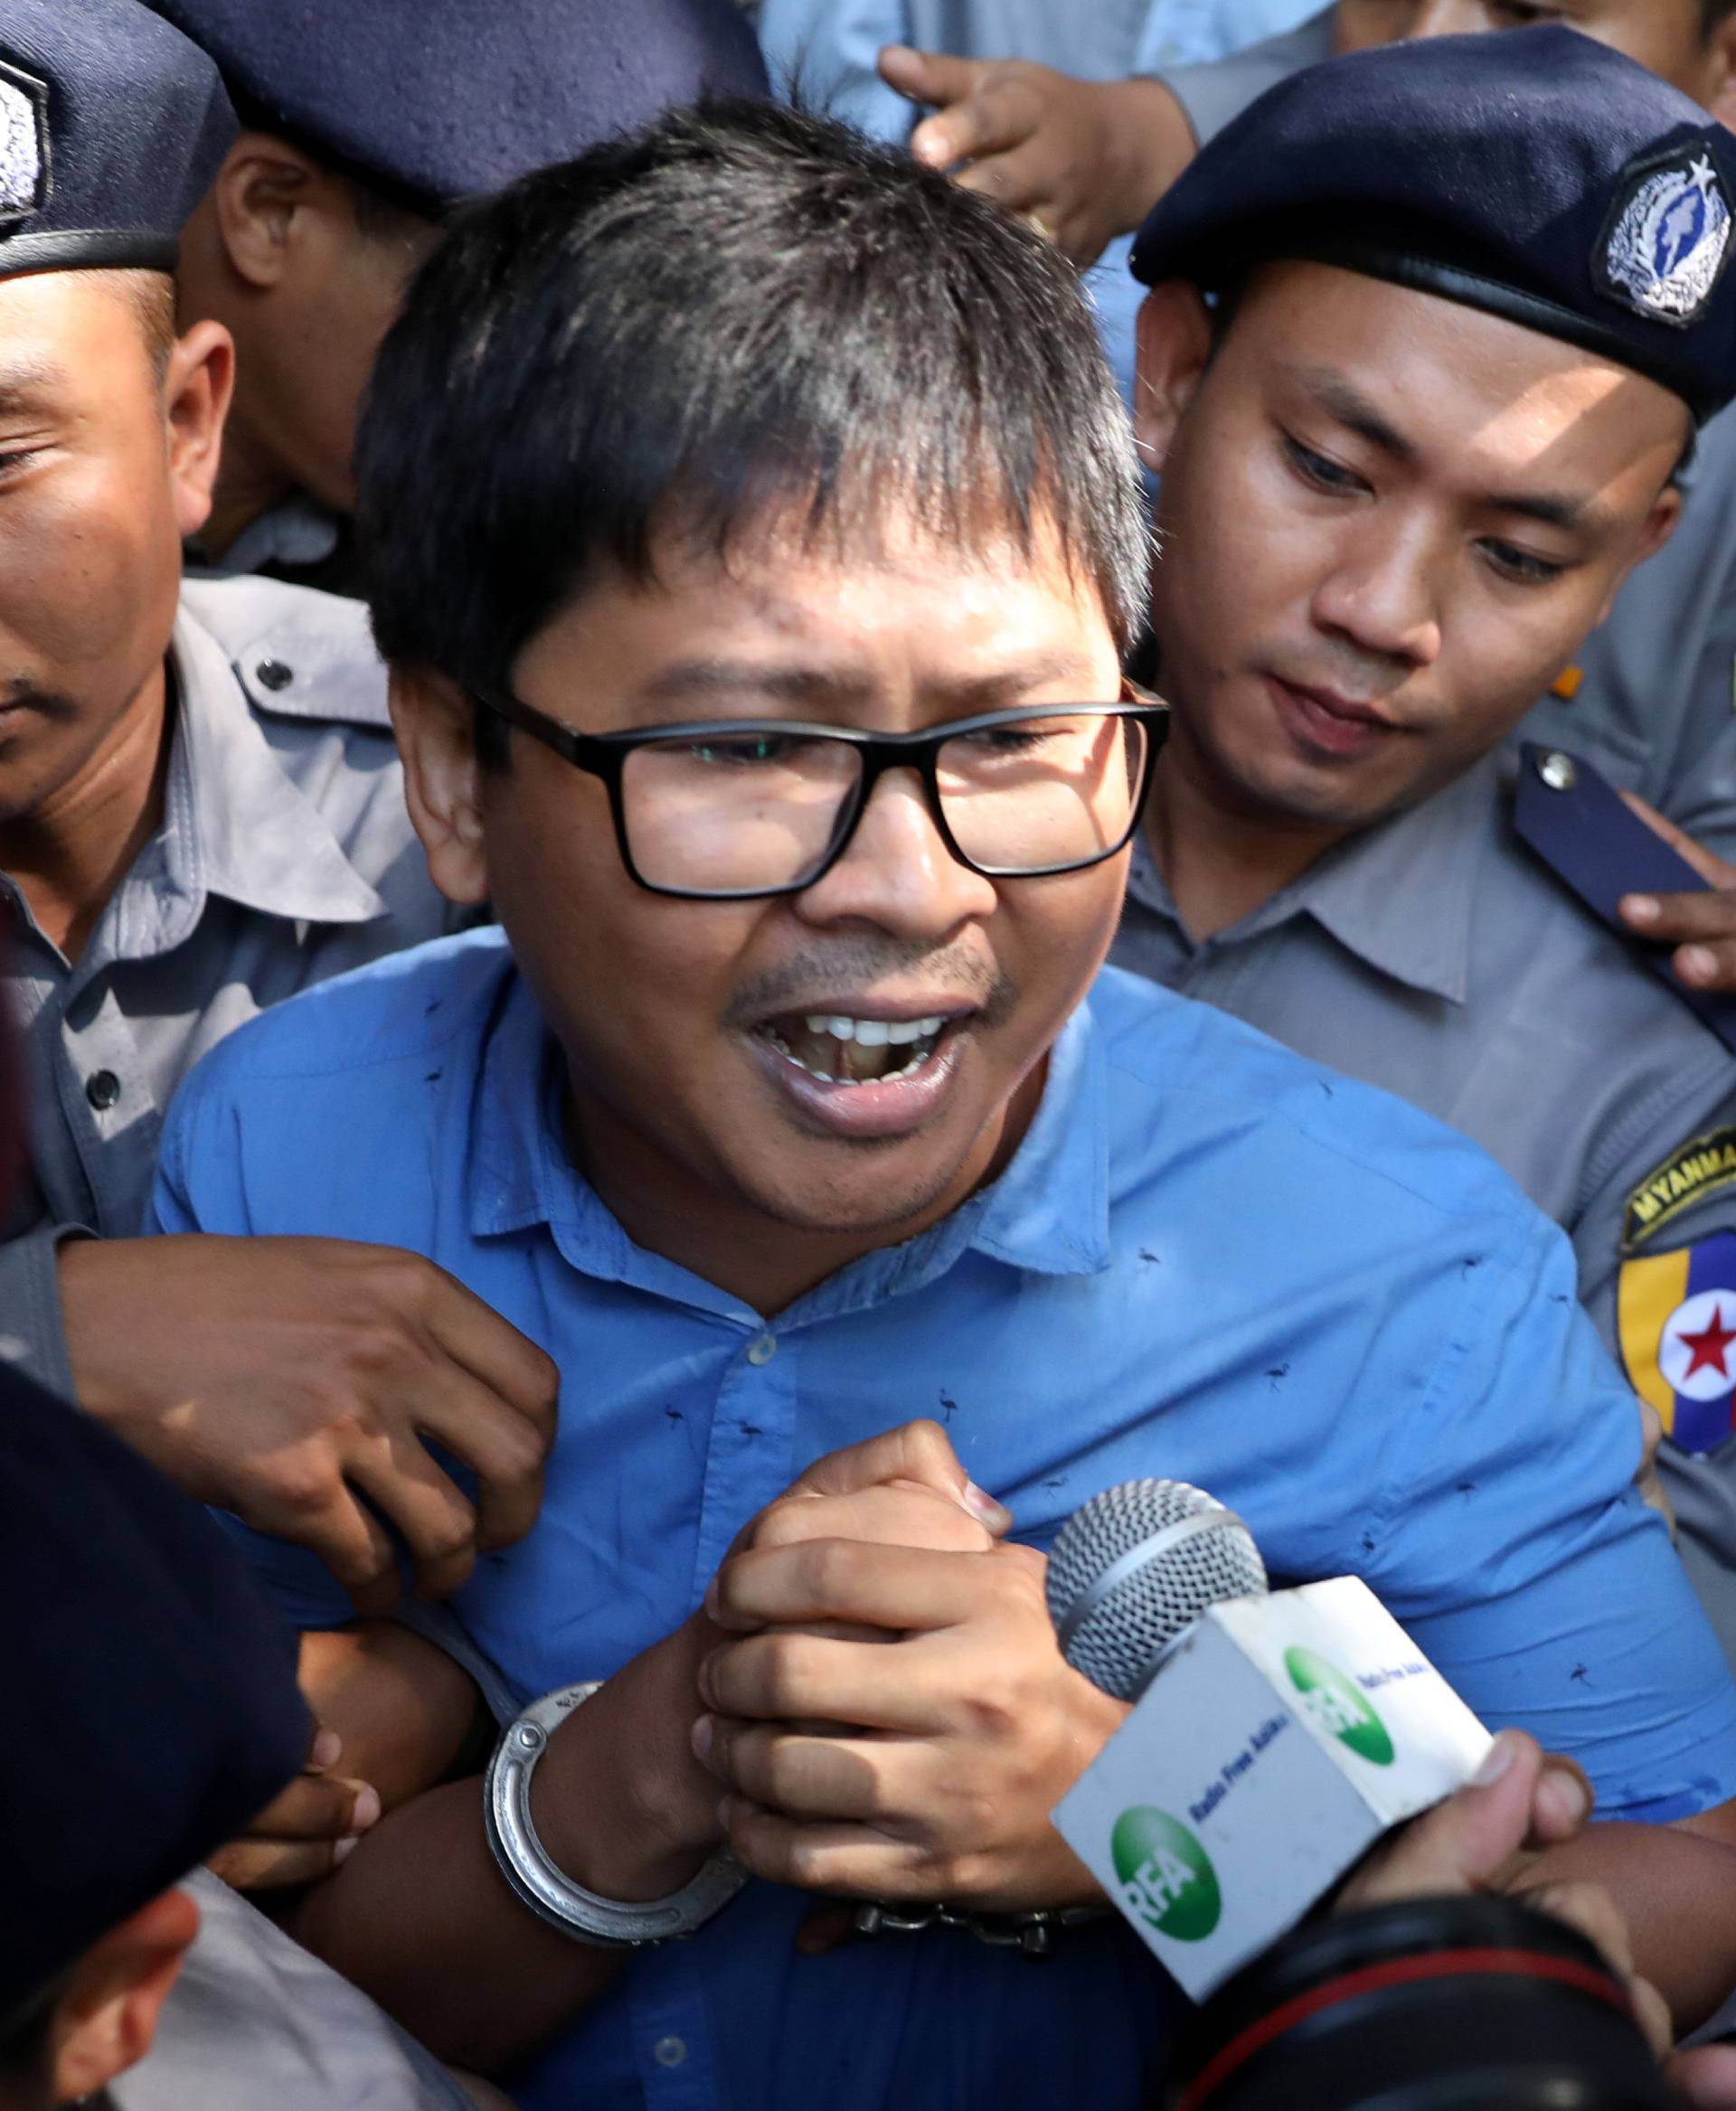 Reuters journalist Wa Lone arrives at the court in Yangon, Myanmar